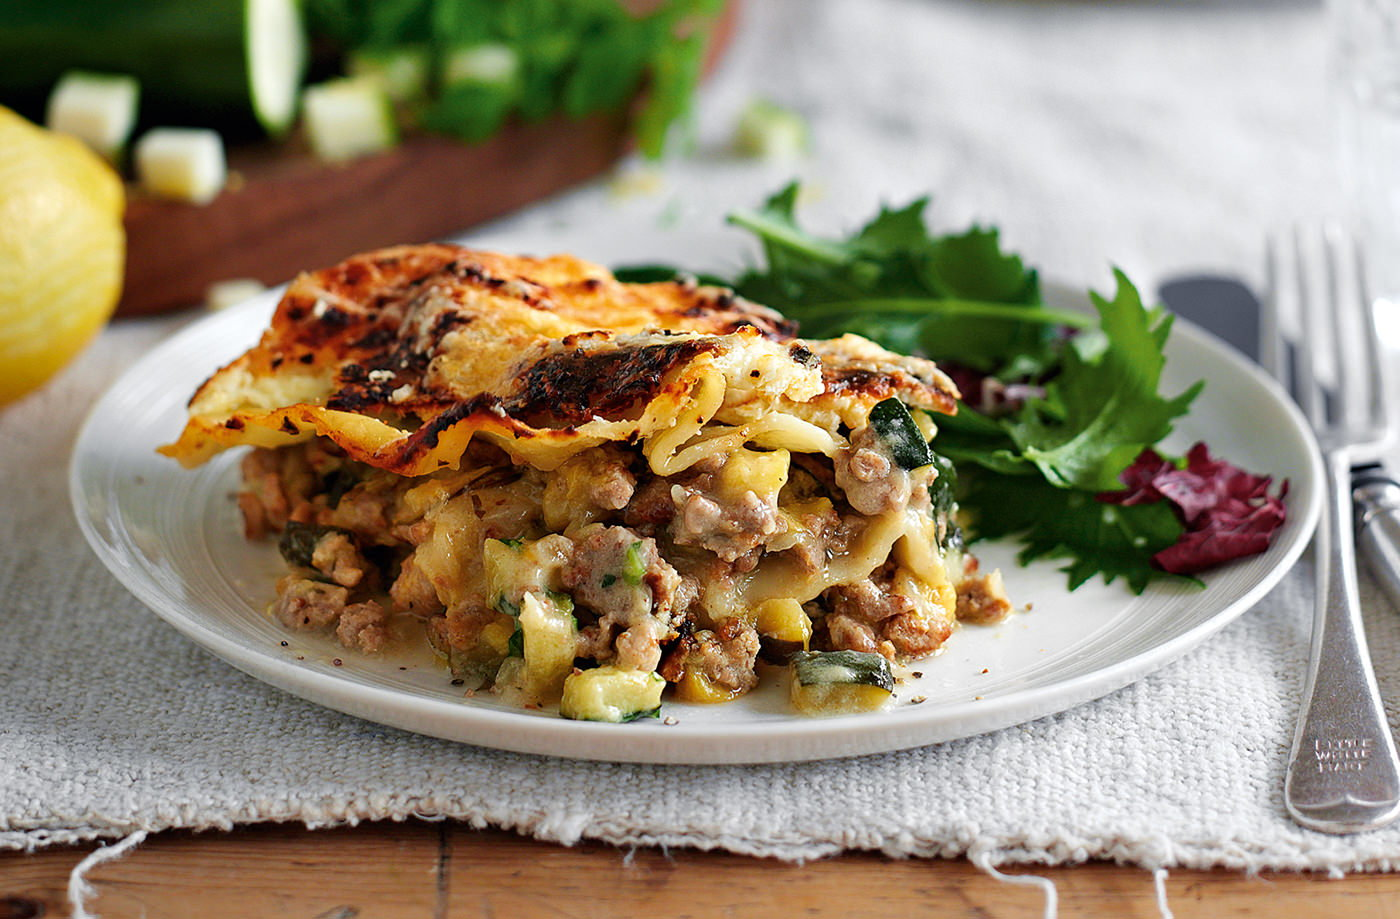 Turkey, spinach and ricotta lasagne recipe